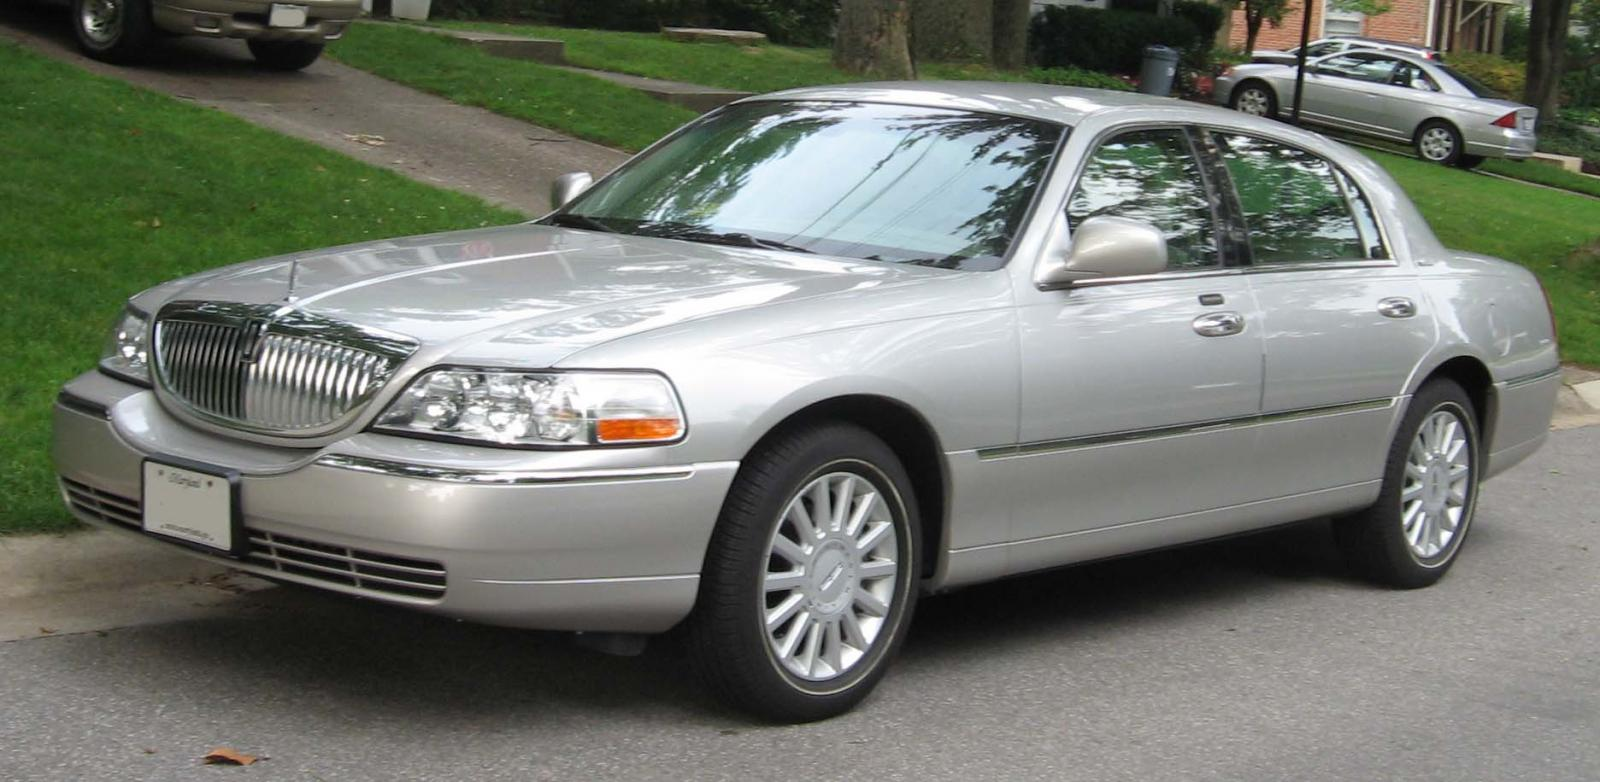 2003 Lincoln Town Car 1600px Image 10 Toyota Premio Old